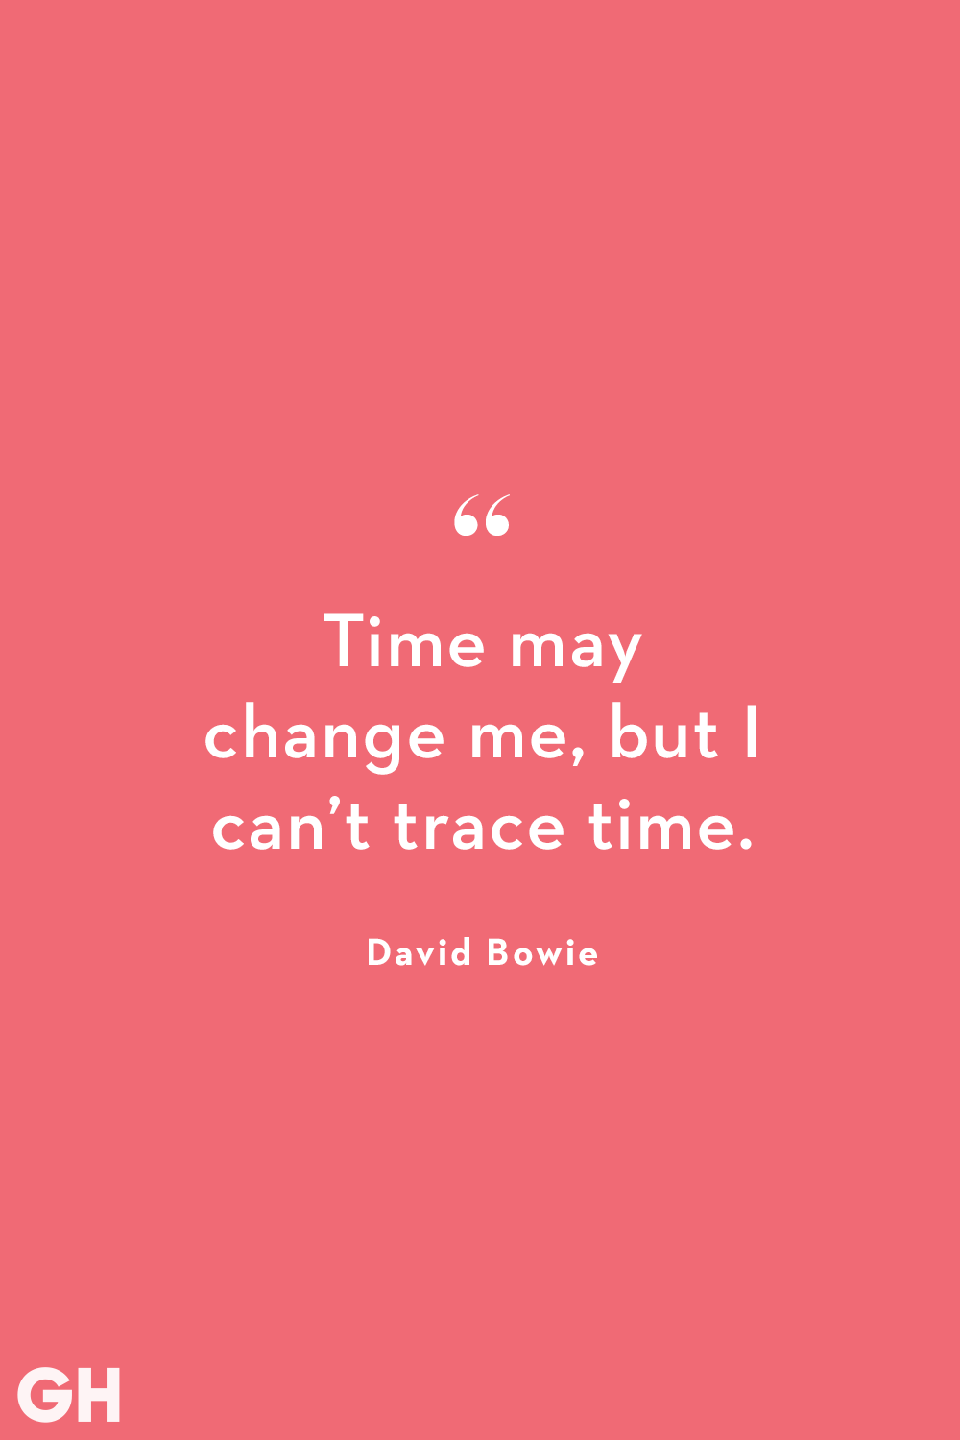 <p>Time may change me, but I can't trace time.</p>